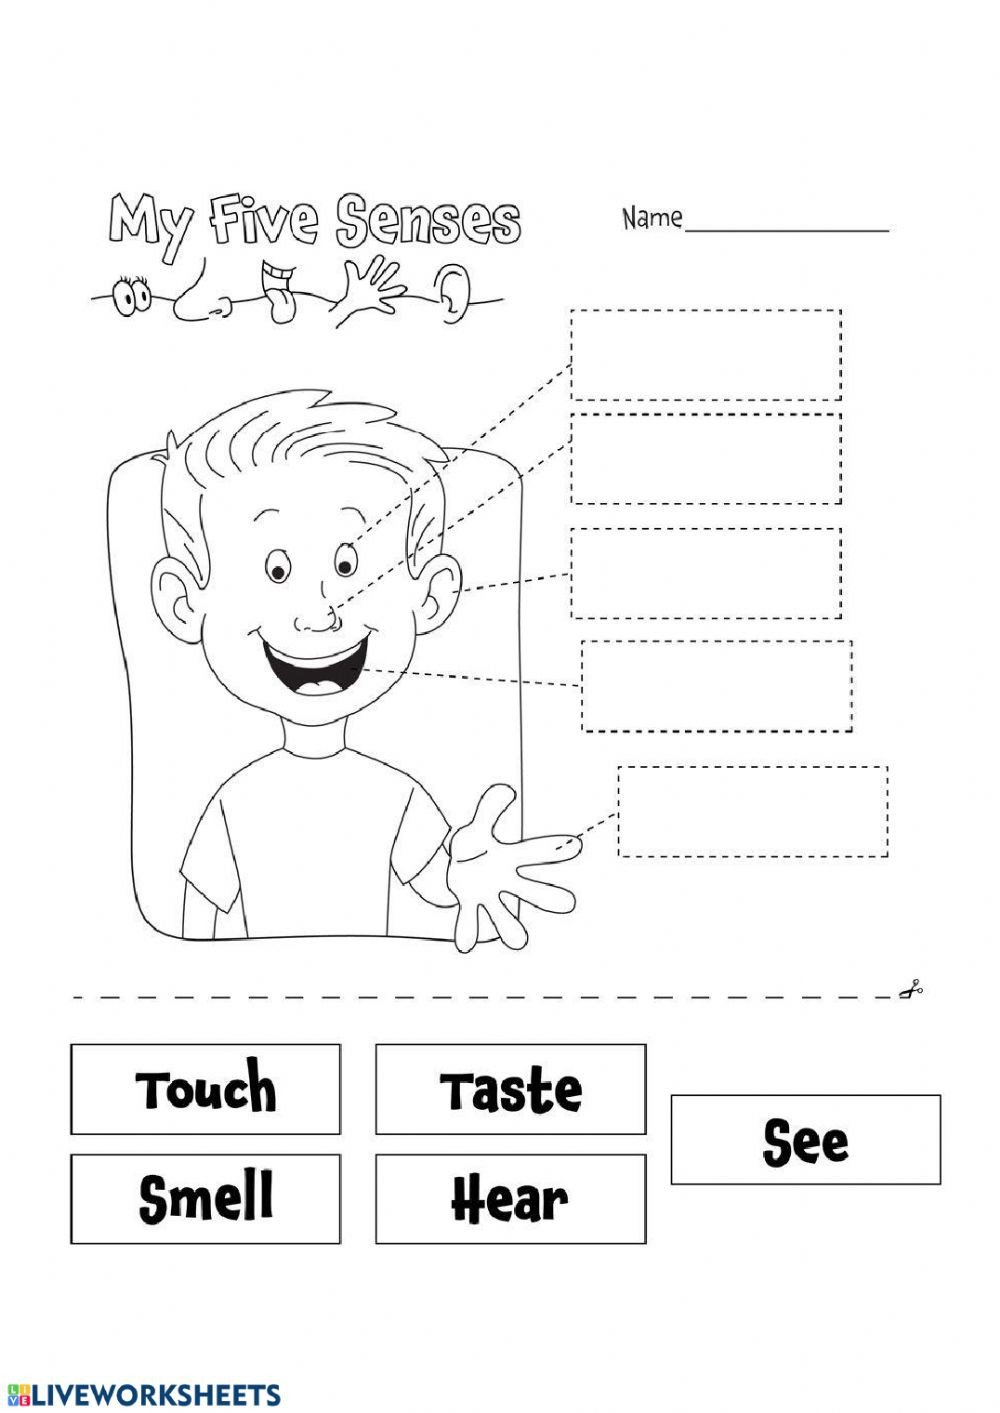 The Five Senses Worksheets My Five Senses Interactive Worksheet